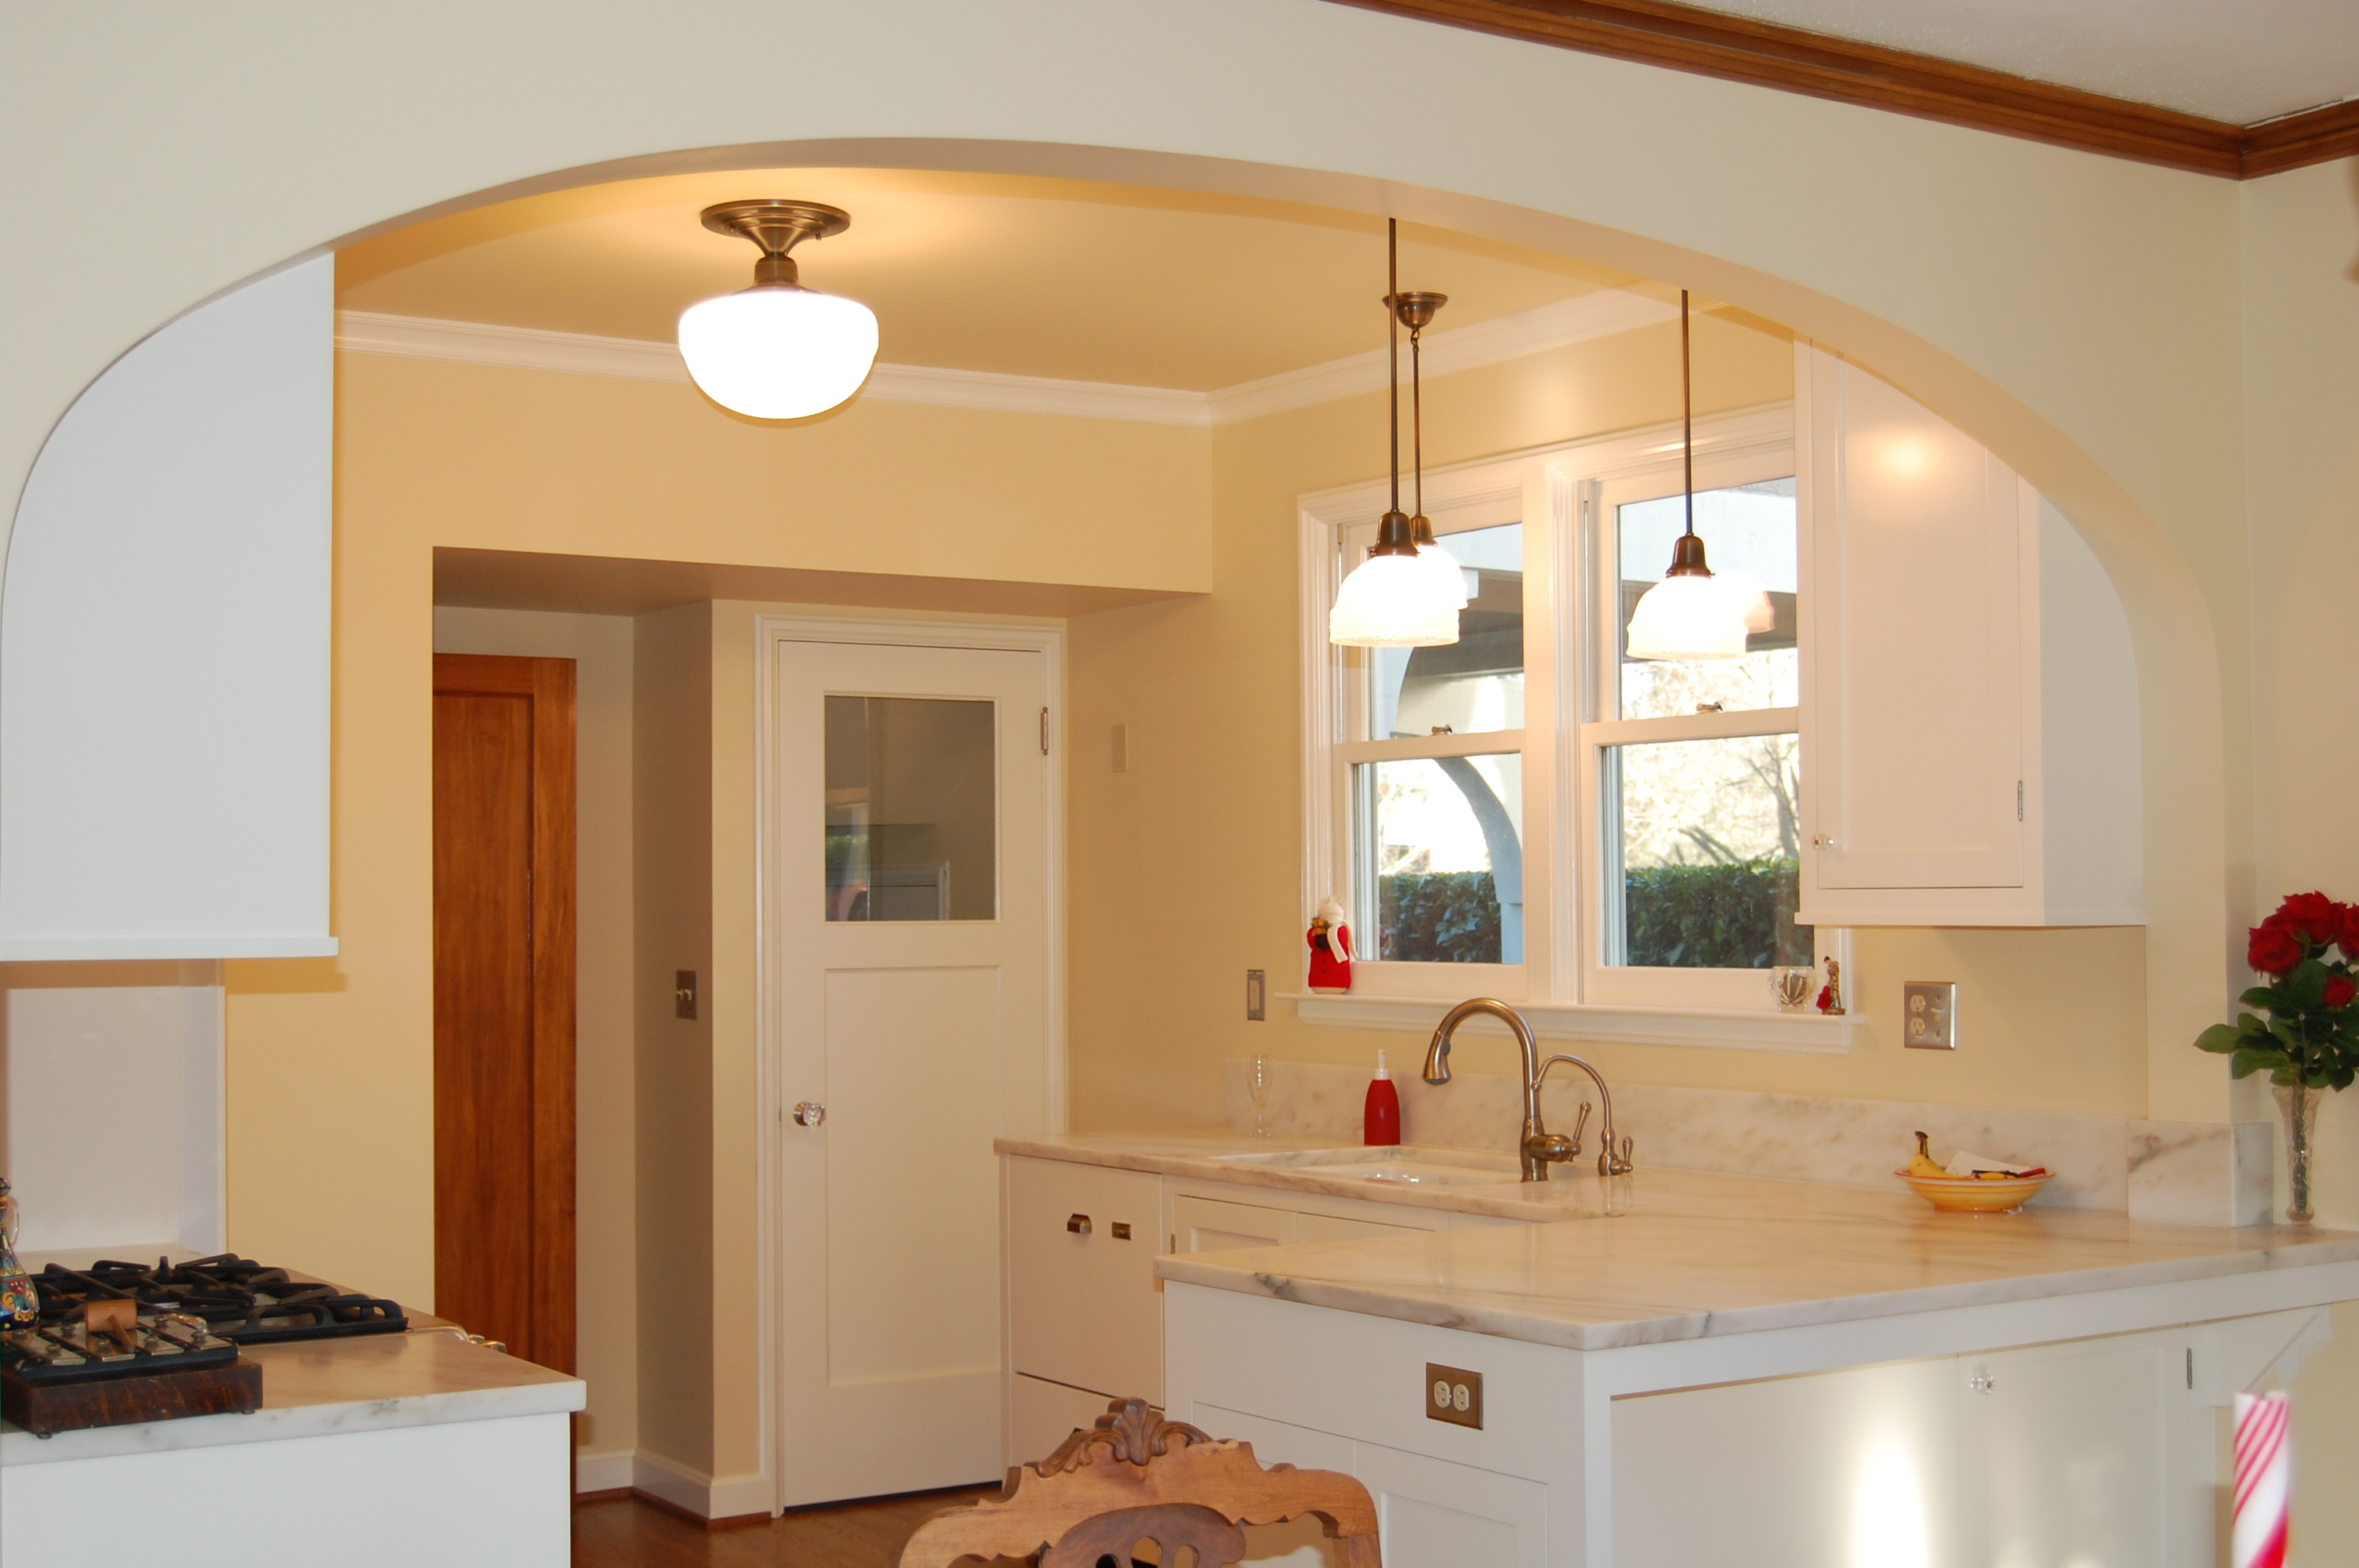 Kitchen detail with arch to match existing elsewhere in home reconfigured doorways